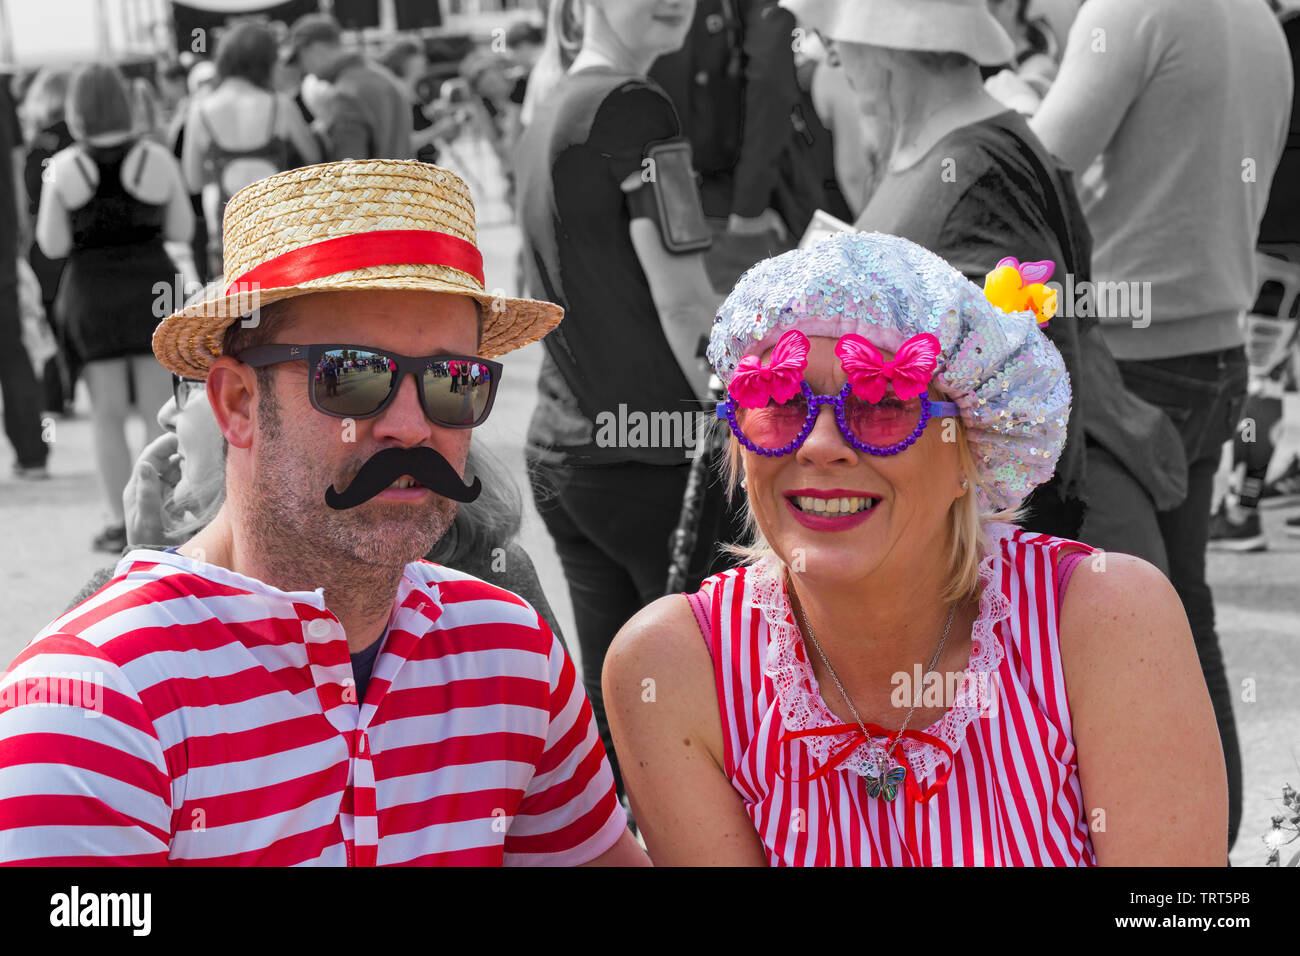 Couple dressed in Victorian bathing costumes for Race for Life at Bournemouth, Dorset UK in June - Stock Image